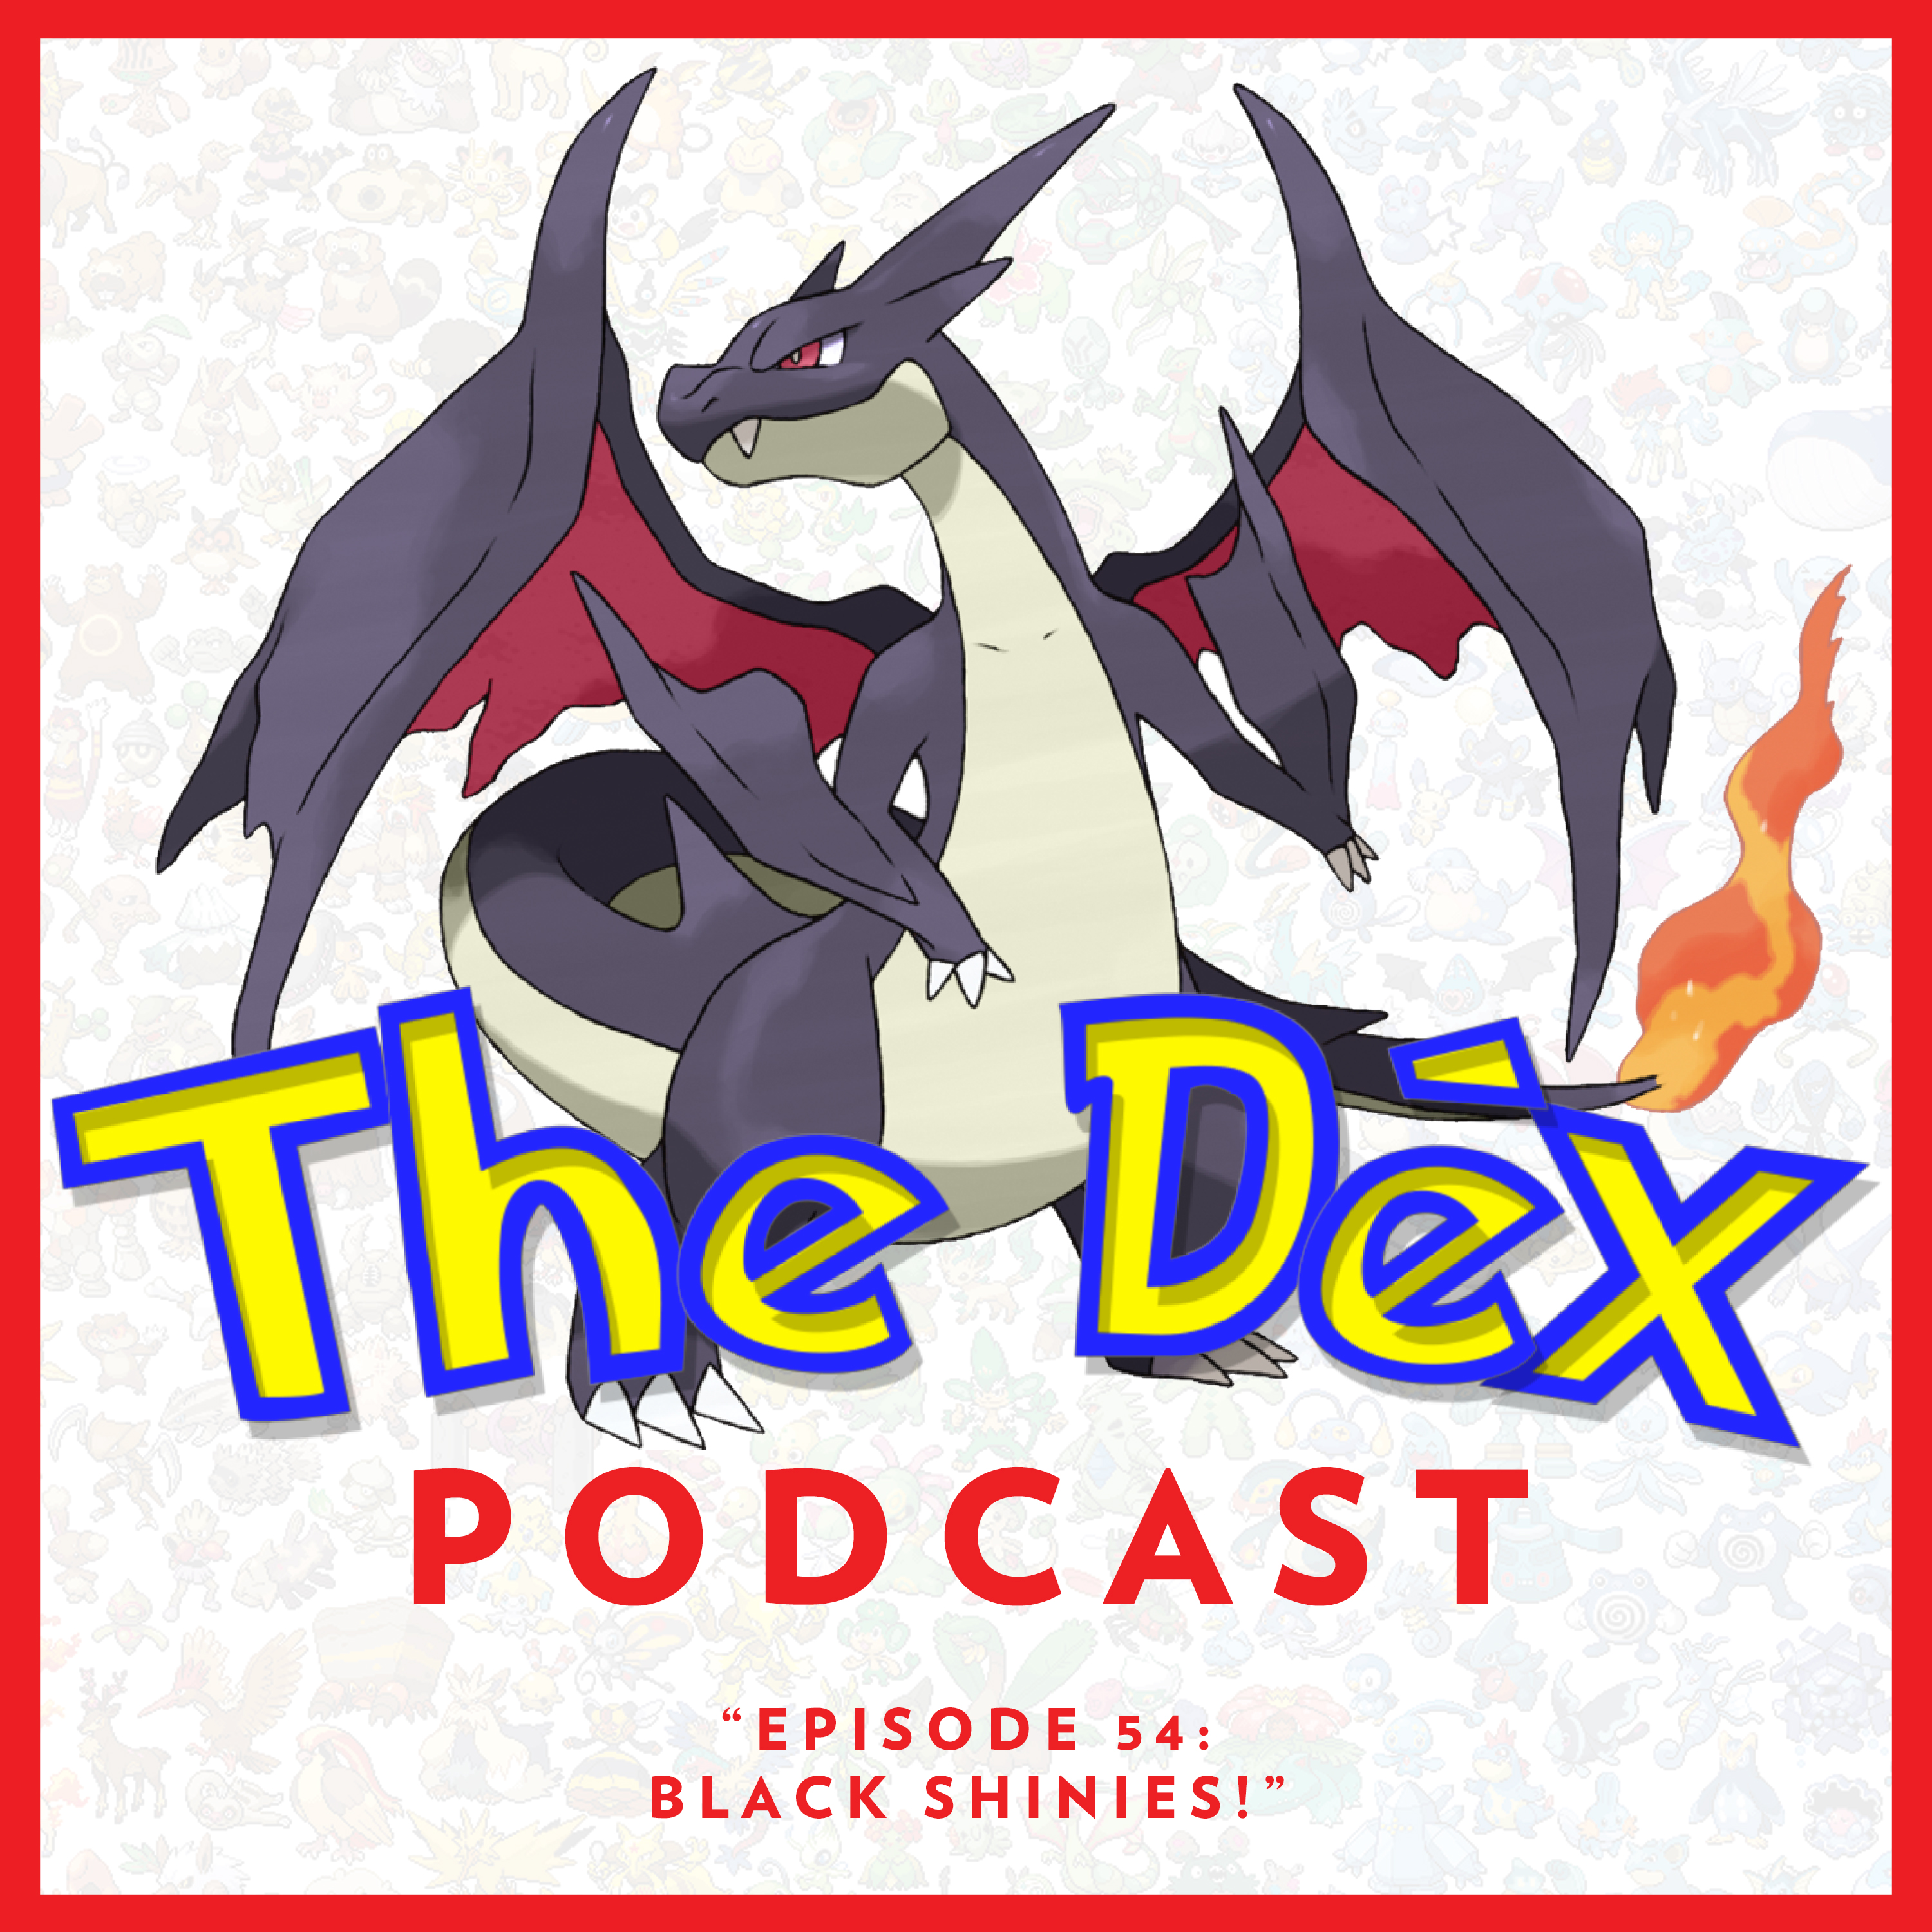 The Dex! Podcast #54: Black Shinies!